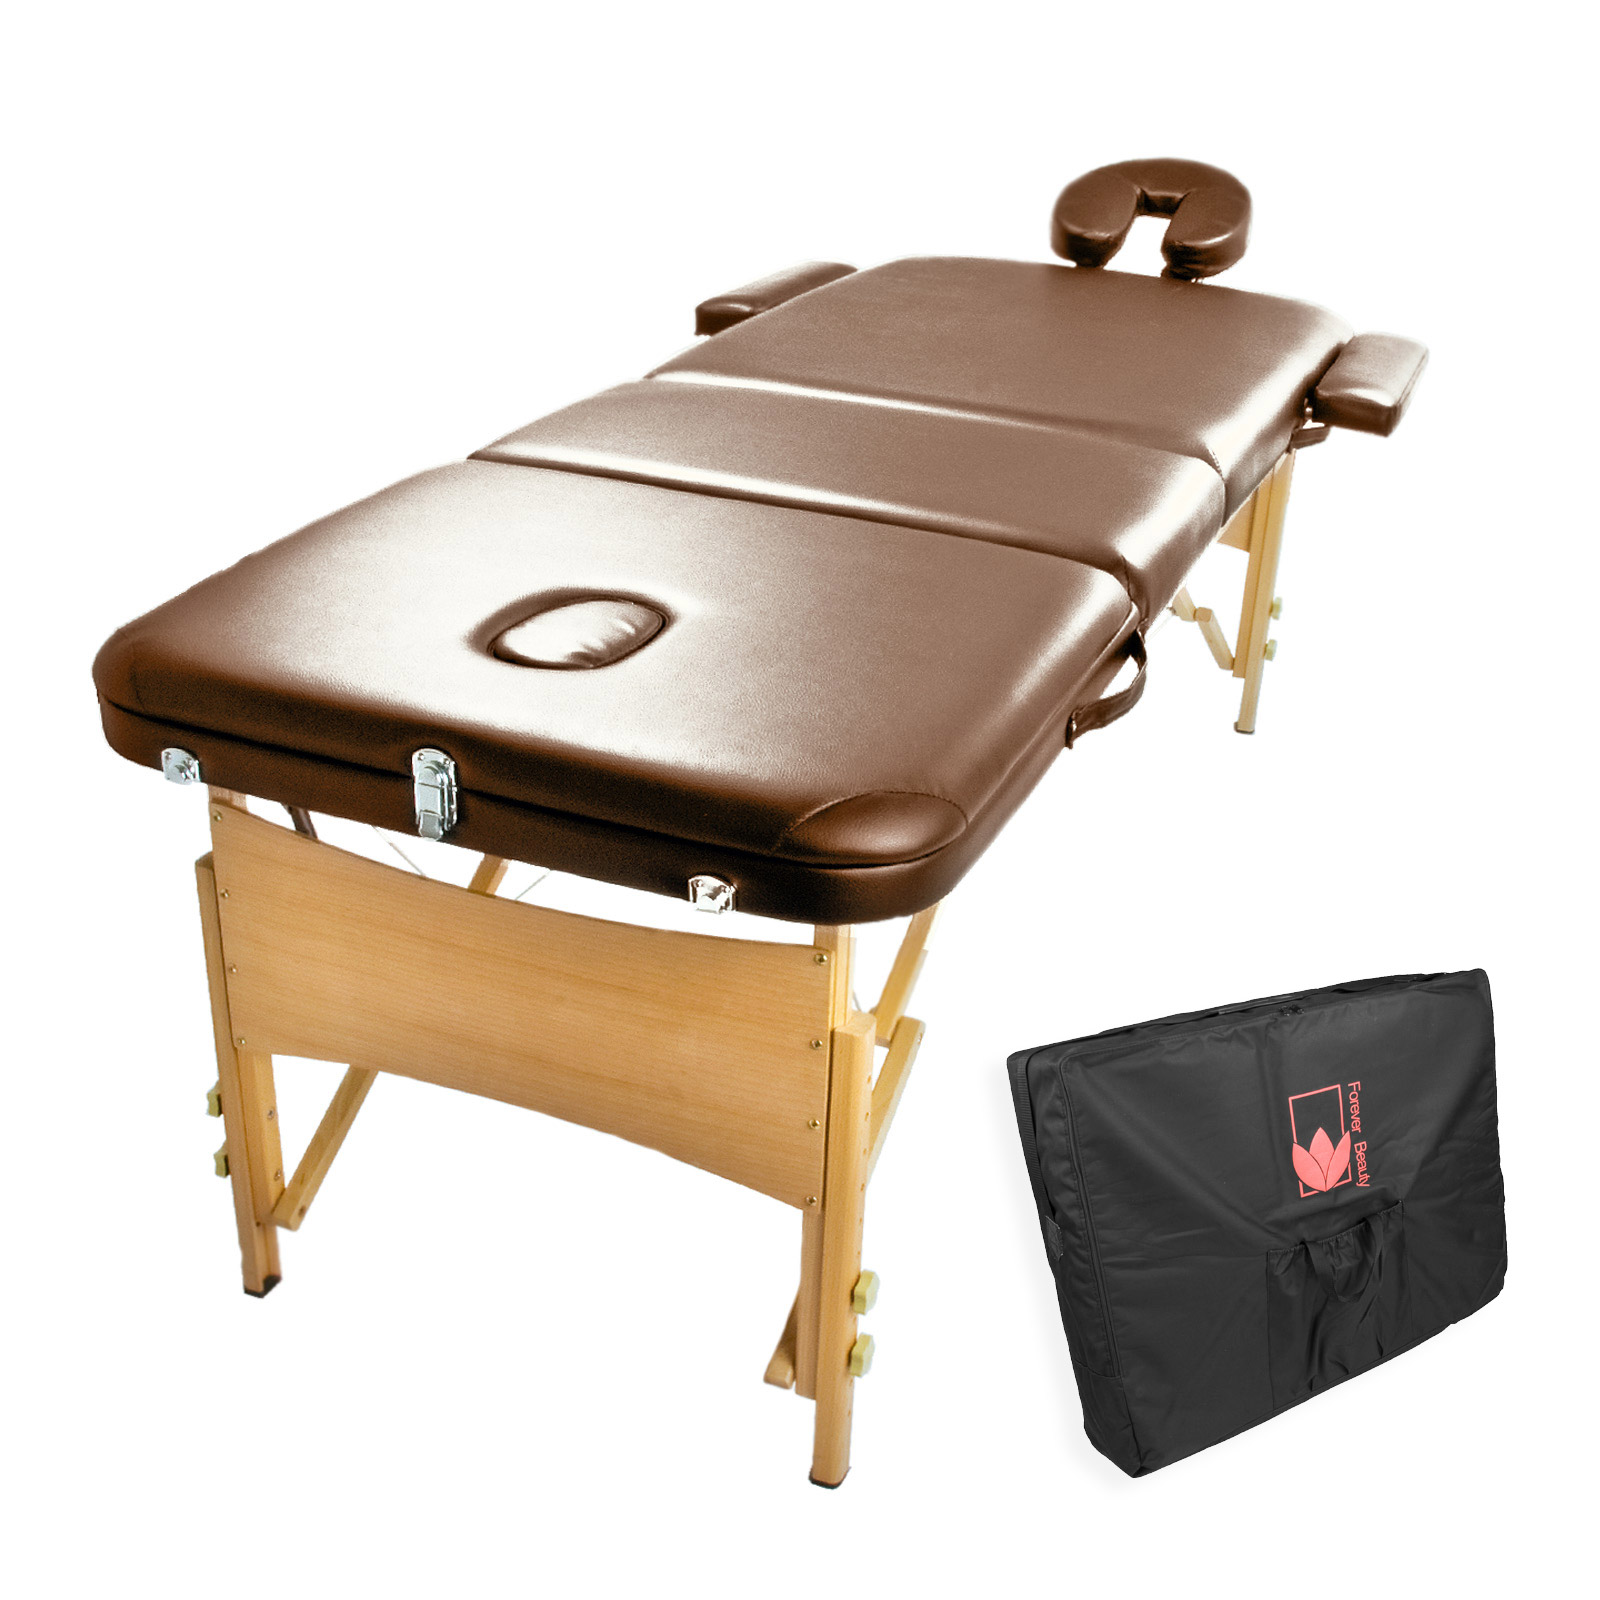 Wooden Portable Massage Table 70cm - BROWN